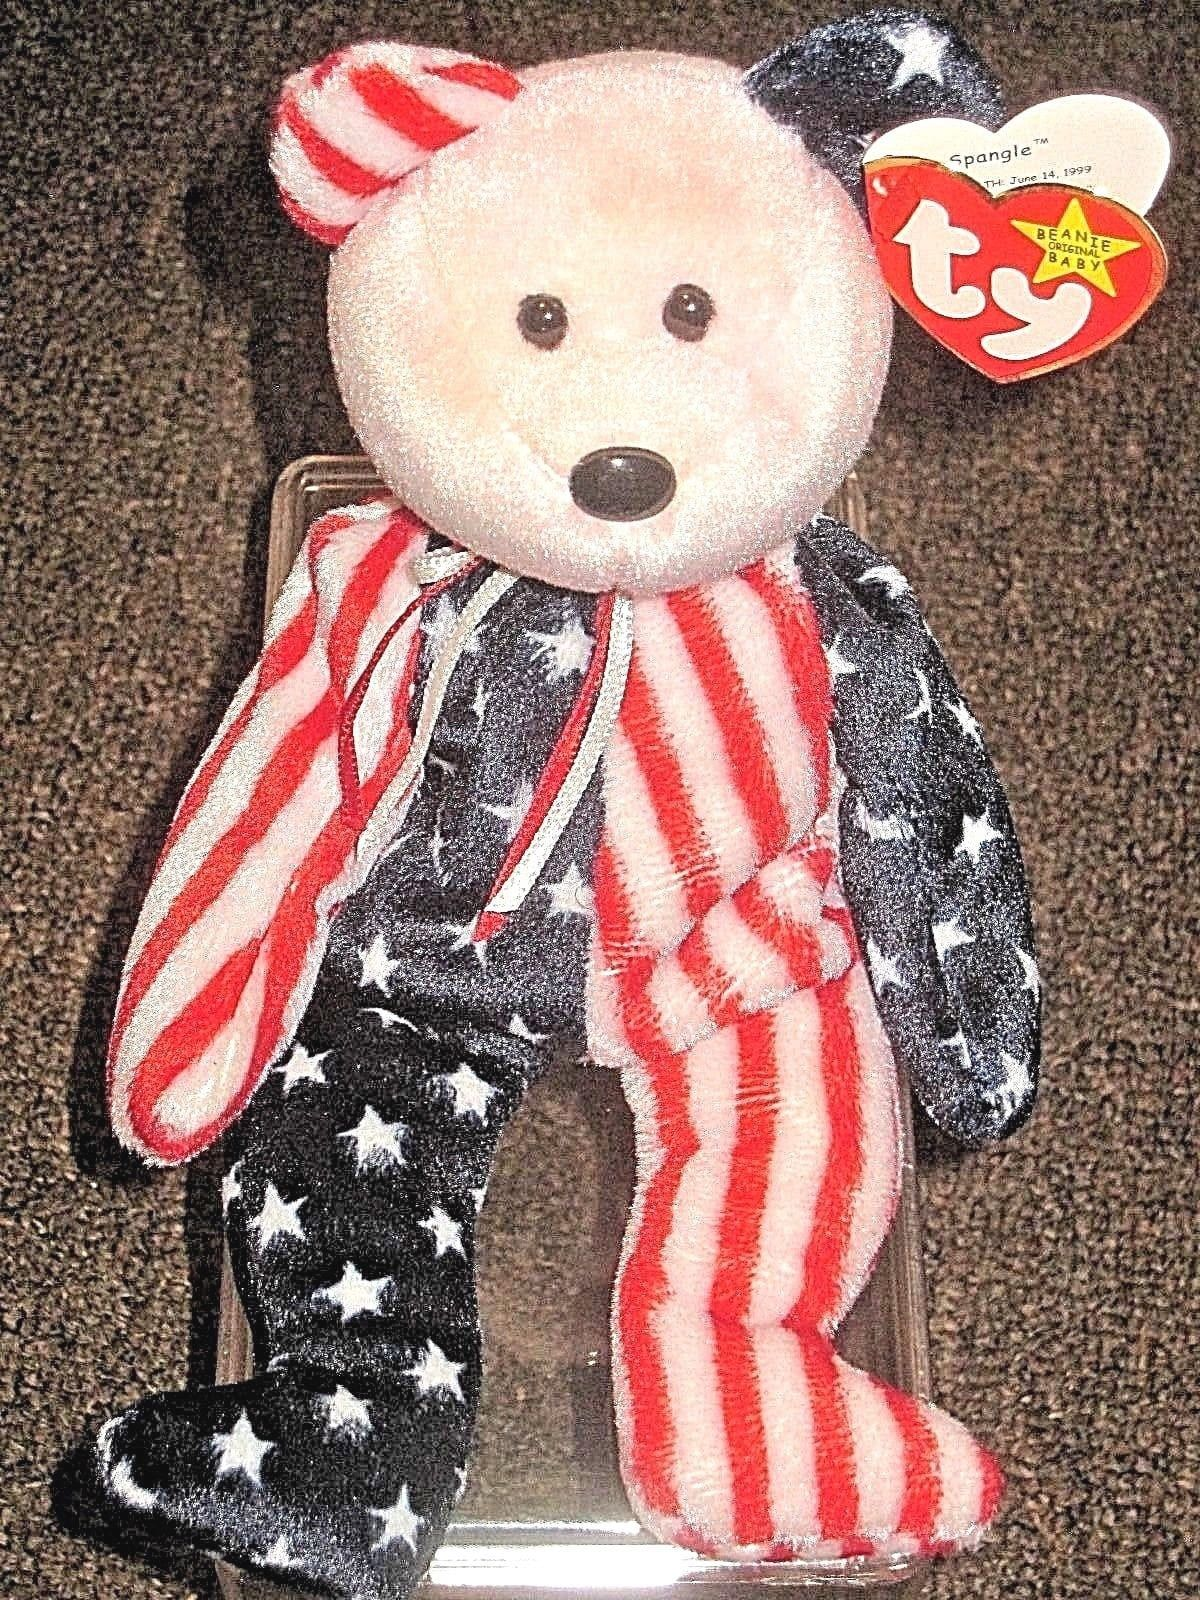 20 Of The Most Valuable Beanie Babies You Might Have That Are